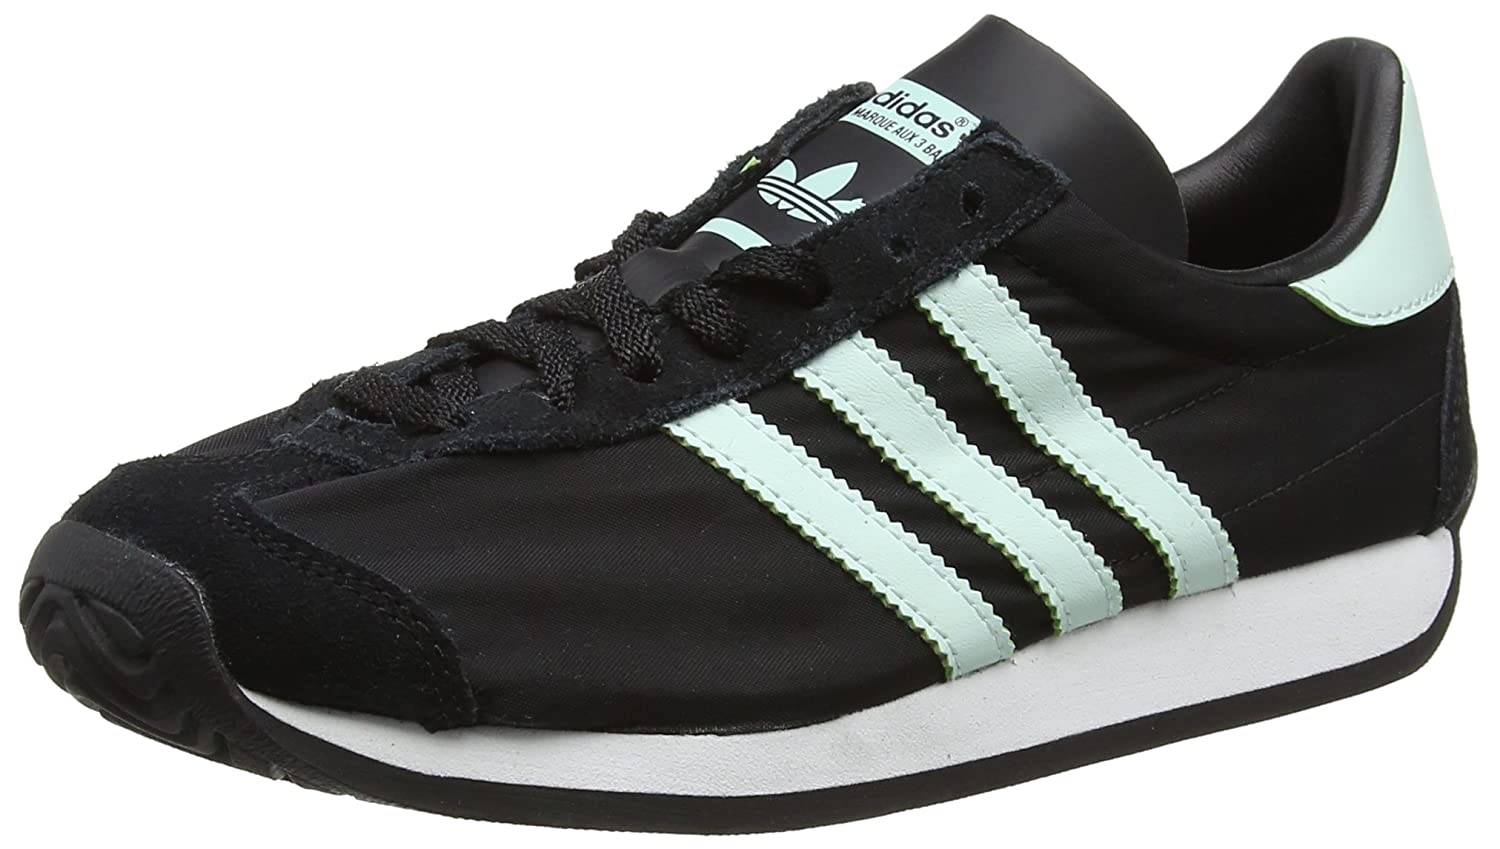 Unisex Adults Country Og Multisport Outdoor Shoes adidas FVWbvbPK